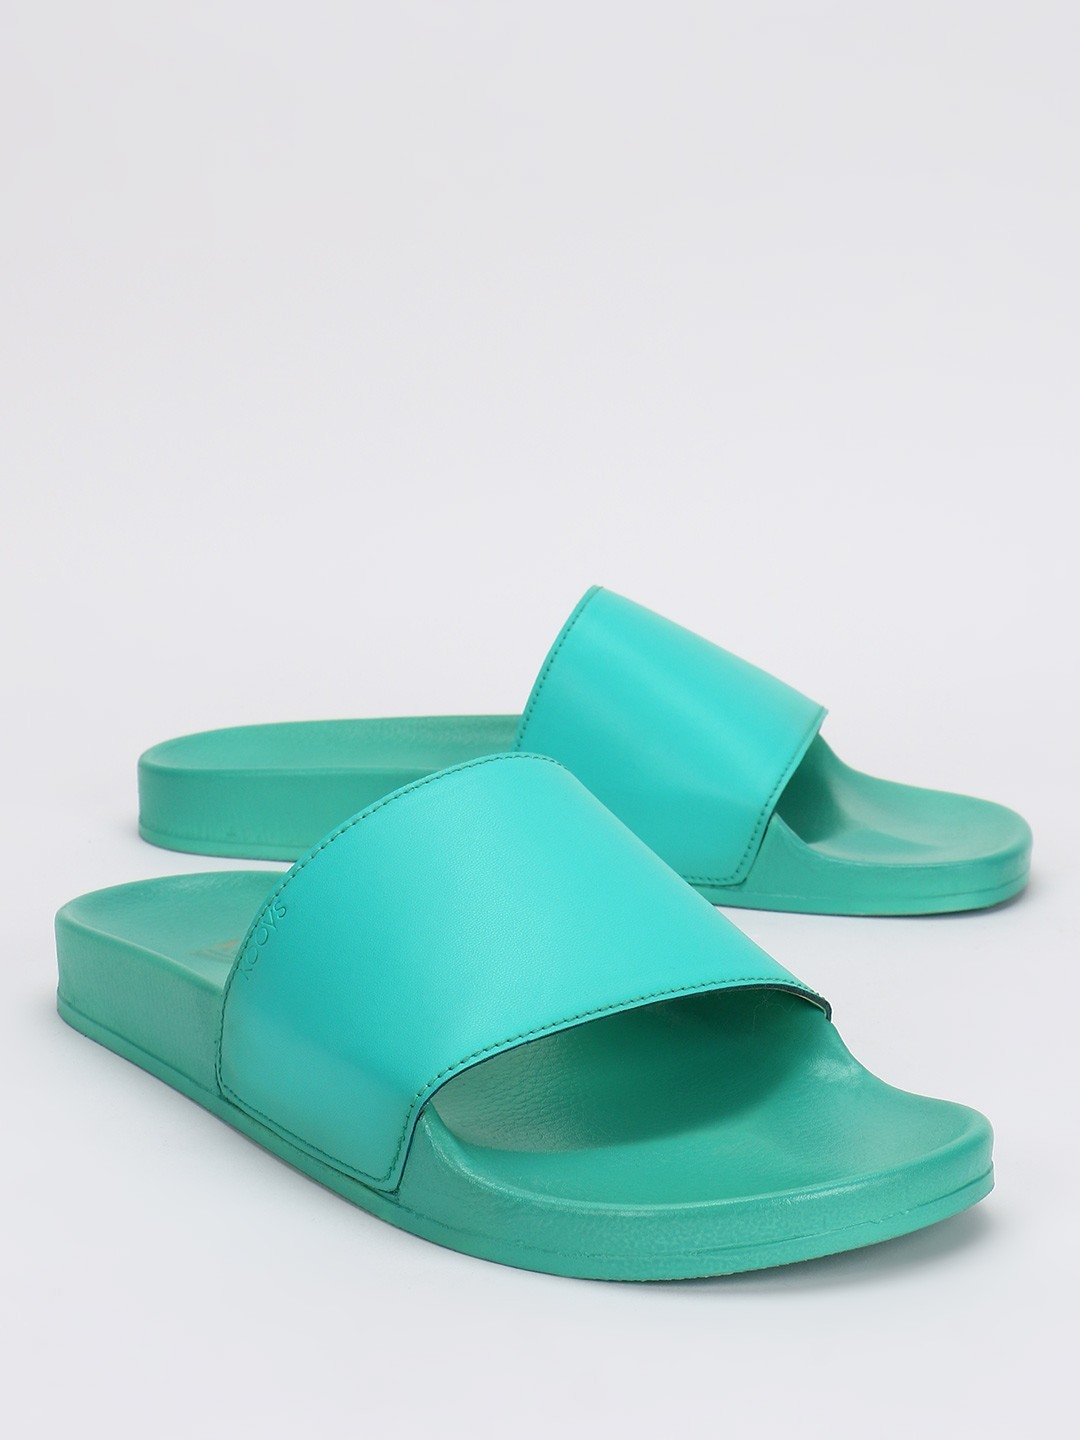 KOOVS Green Basic Pool Slides 1